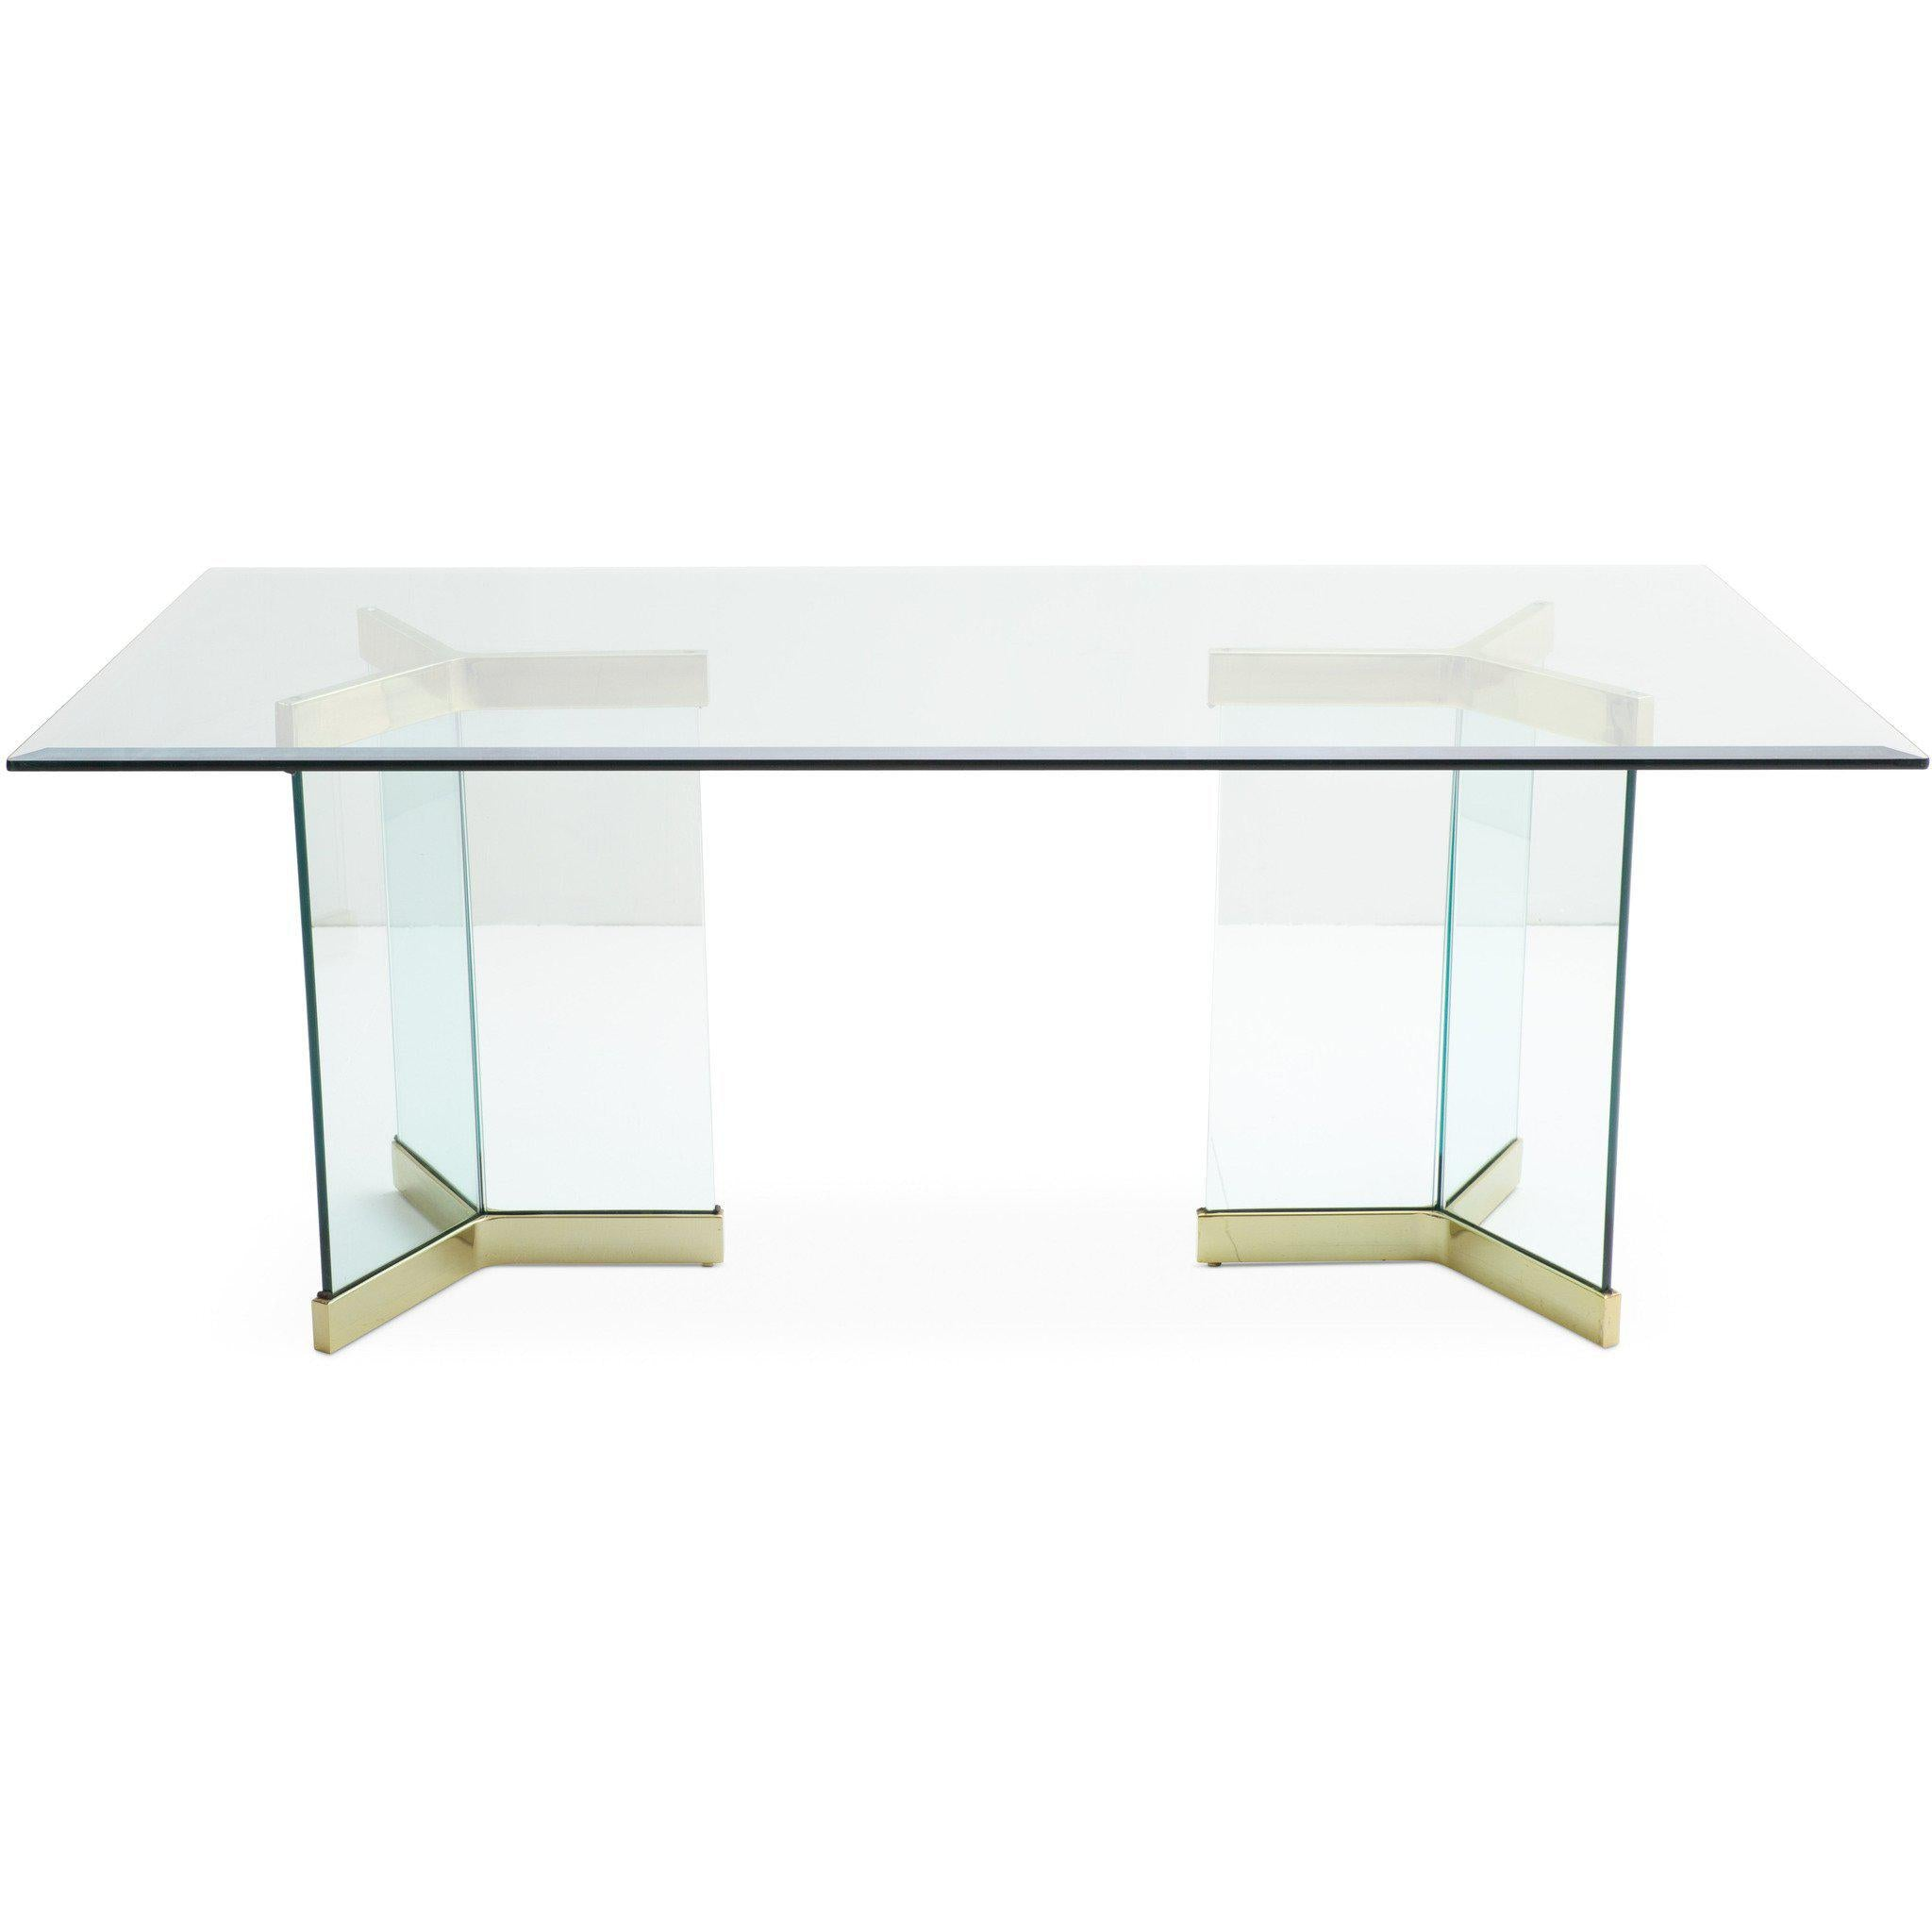 Leon Rosen Sculptural Dining Table